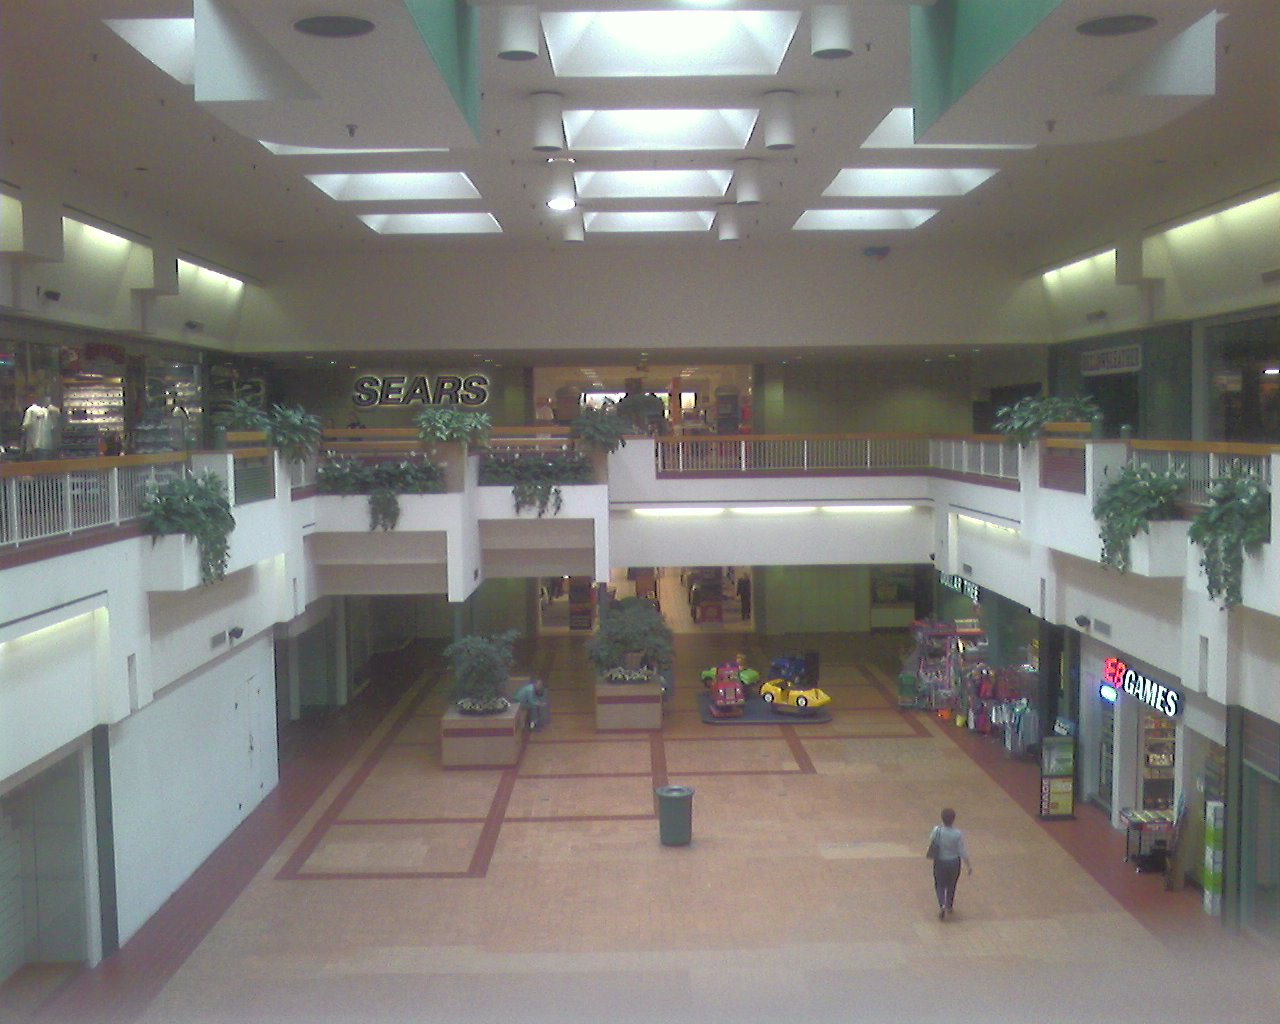 This shot mirrors the historic photo of the Rhode Island Mall in Warwick, RI